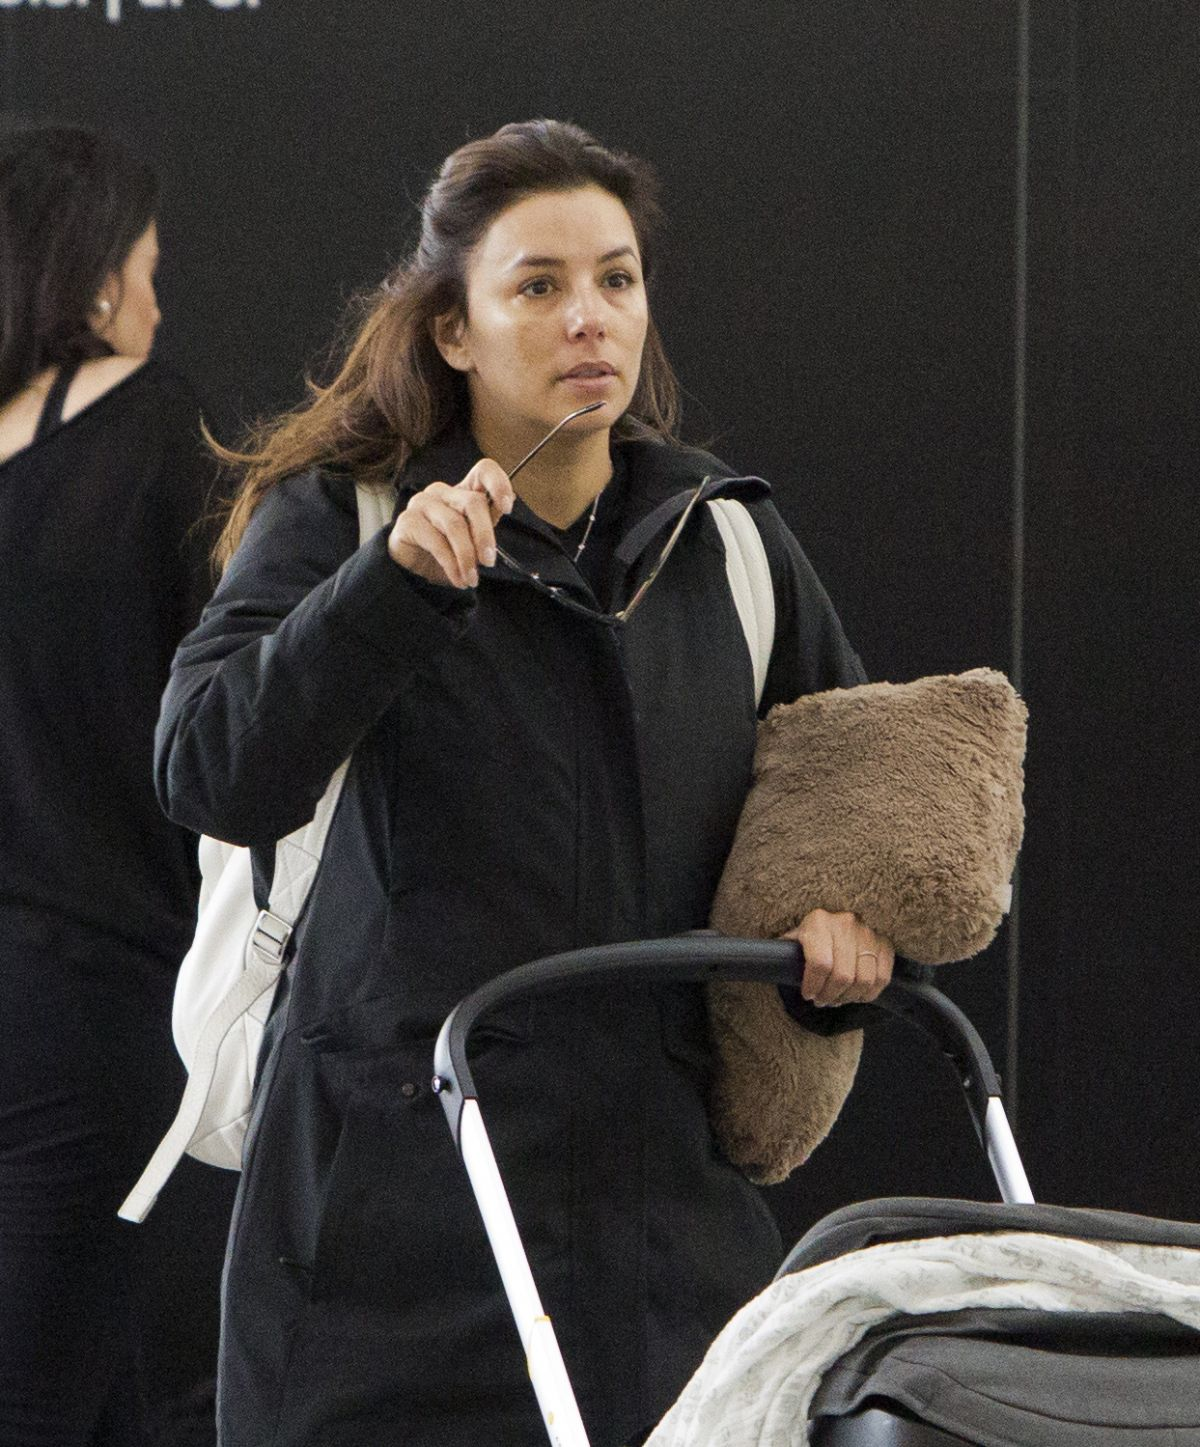 eva longoria at pearson international airport in toronto 03 09 2019 hawtcelebs. Black Bedroom Furniture Sets. Home Design Ideas